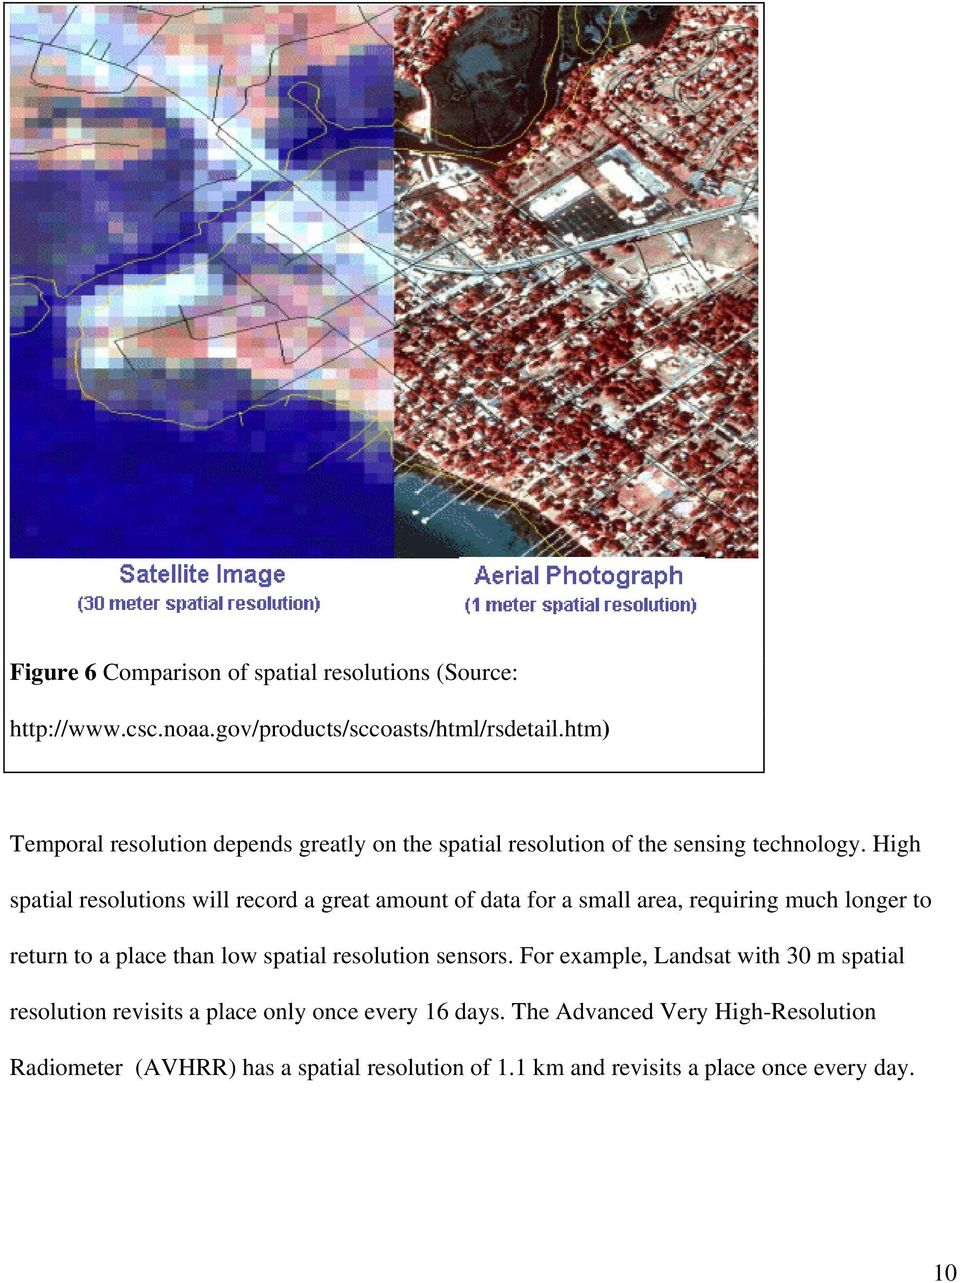 High spatial resolutions will record a great amount of data for a small area, requiring much longer to return to a place than low spatial